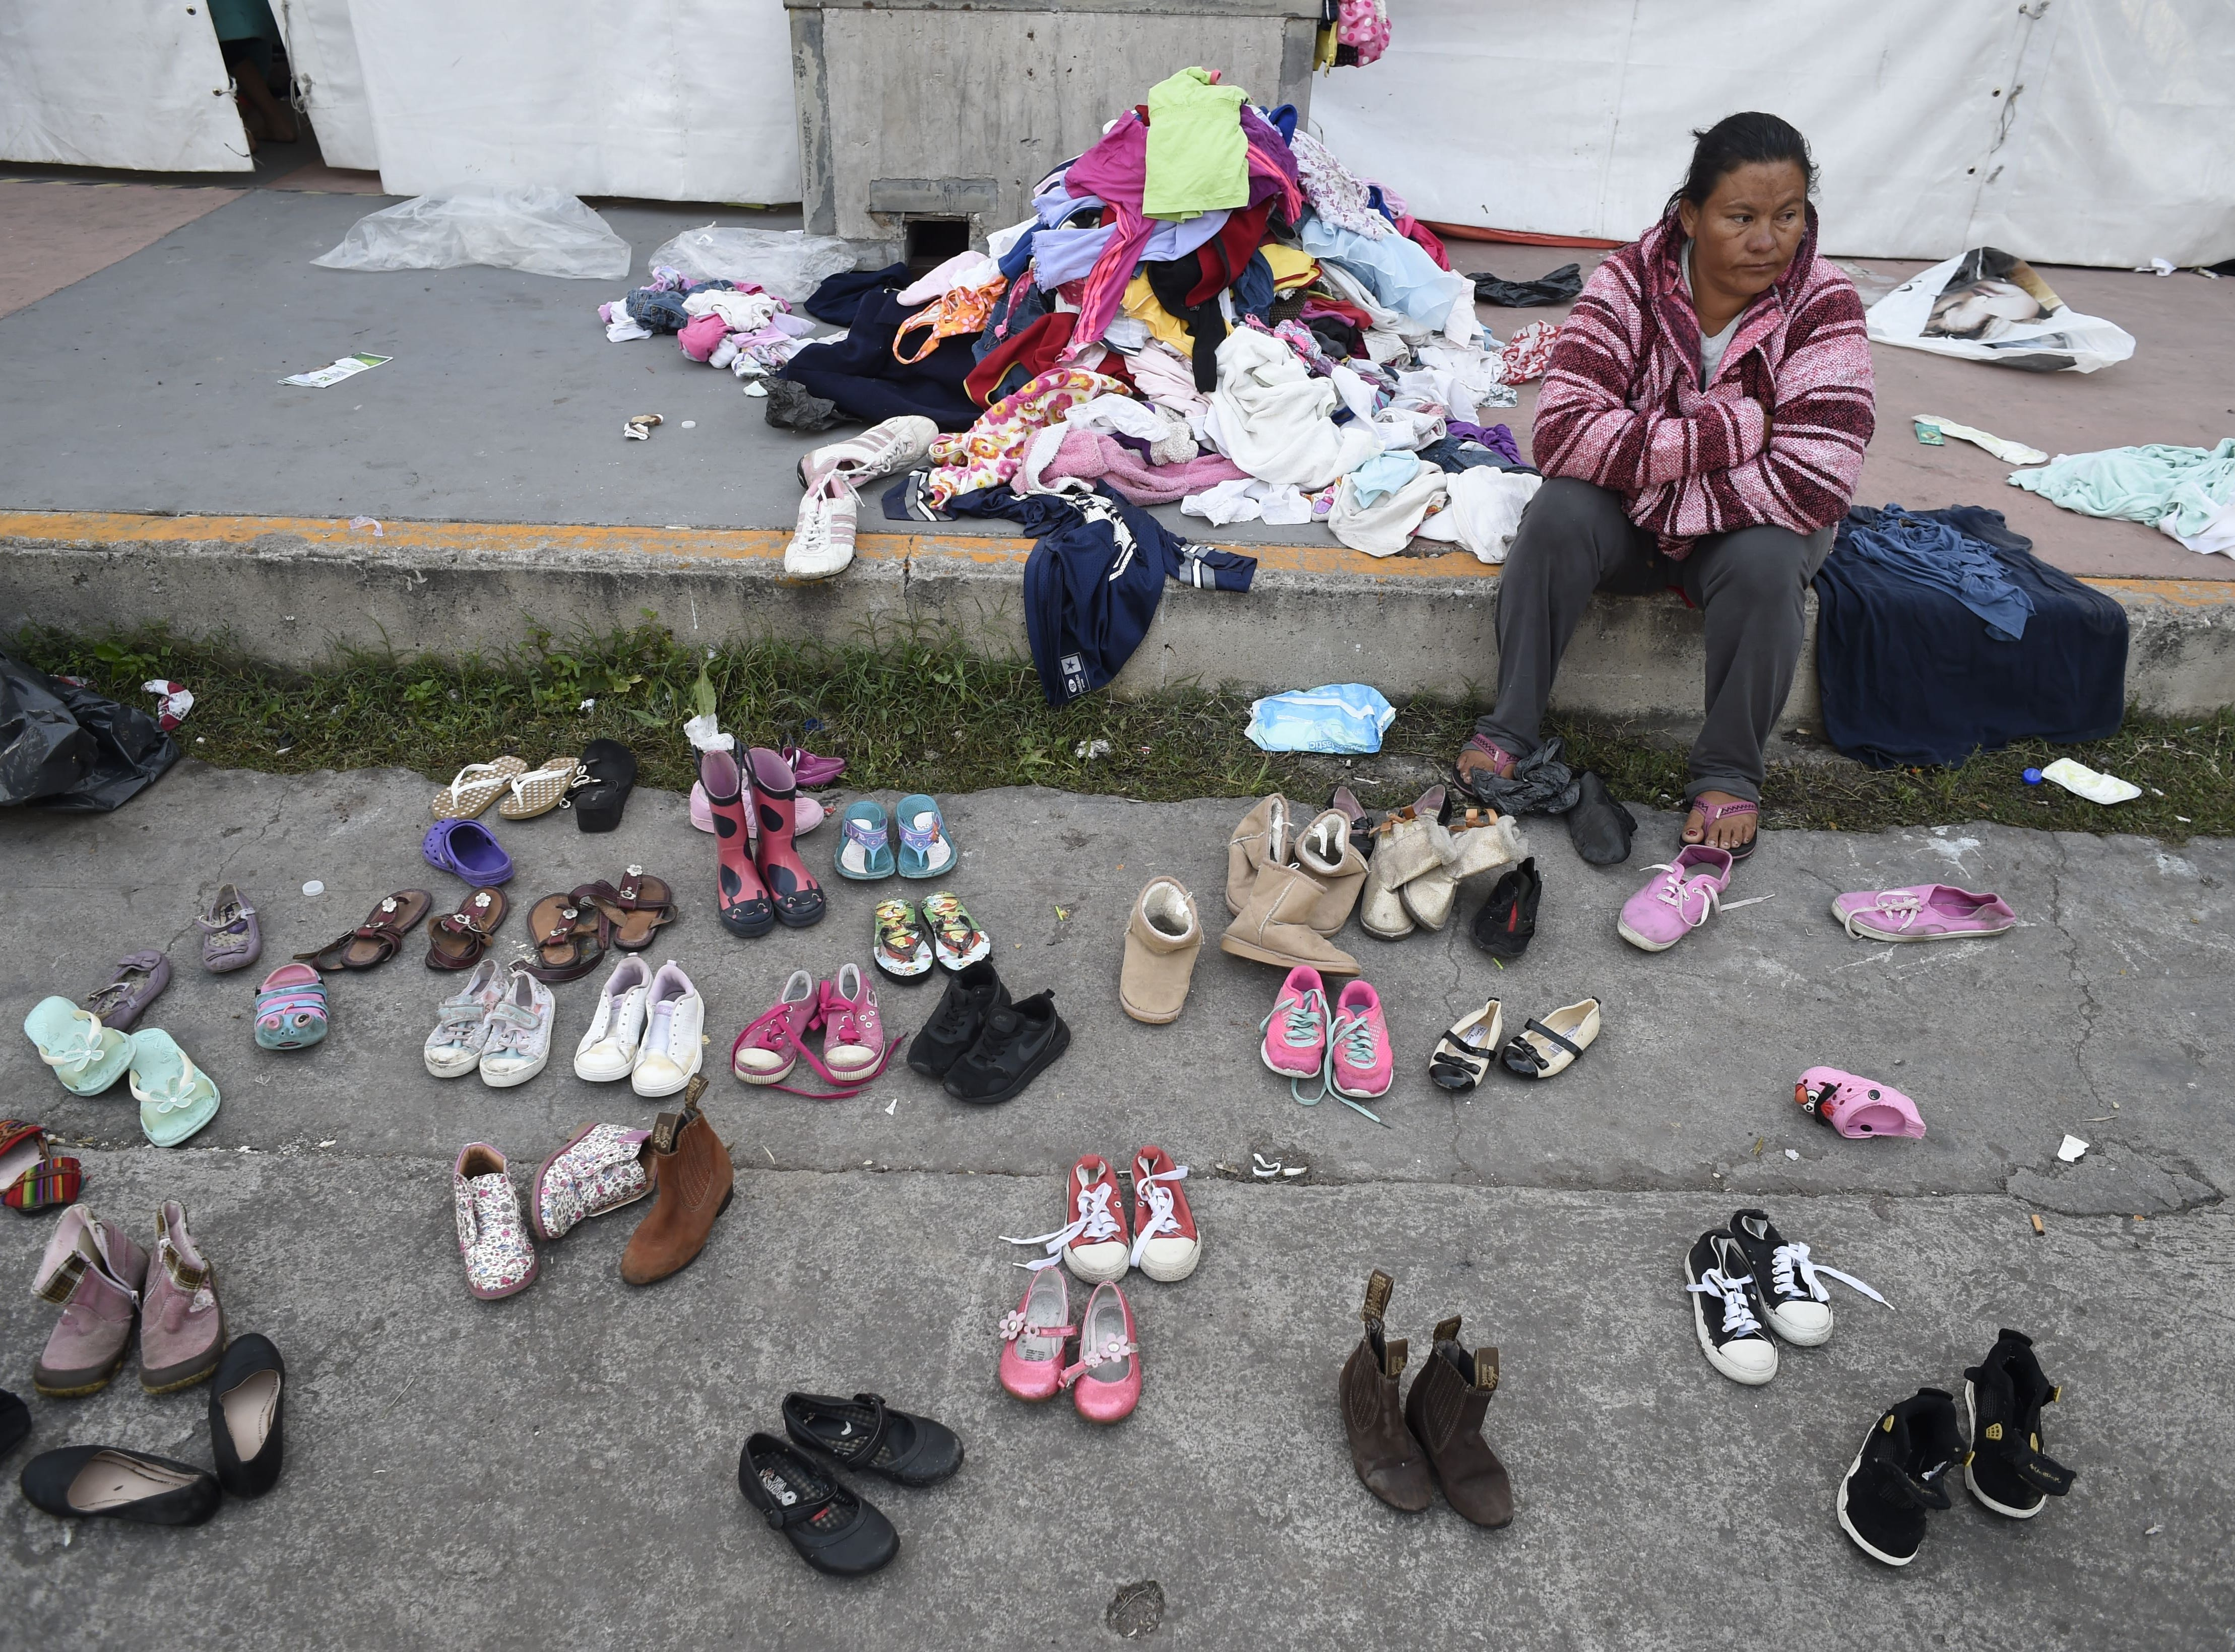 A Central American migrant sits next to donated clothes and shoes during a stopover in Mexico City on Nov. 8, 2018.